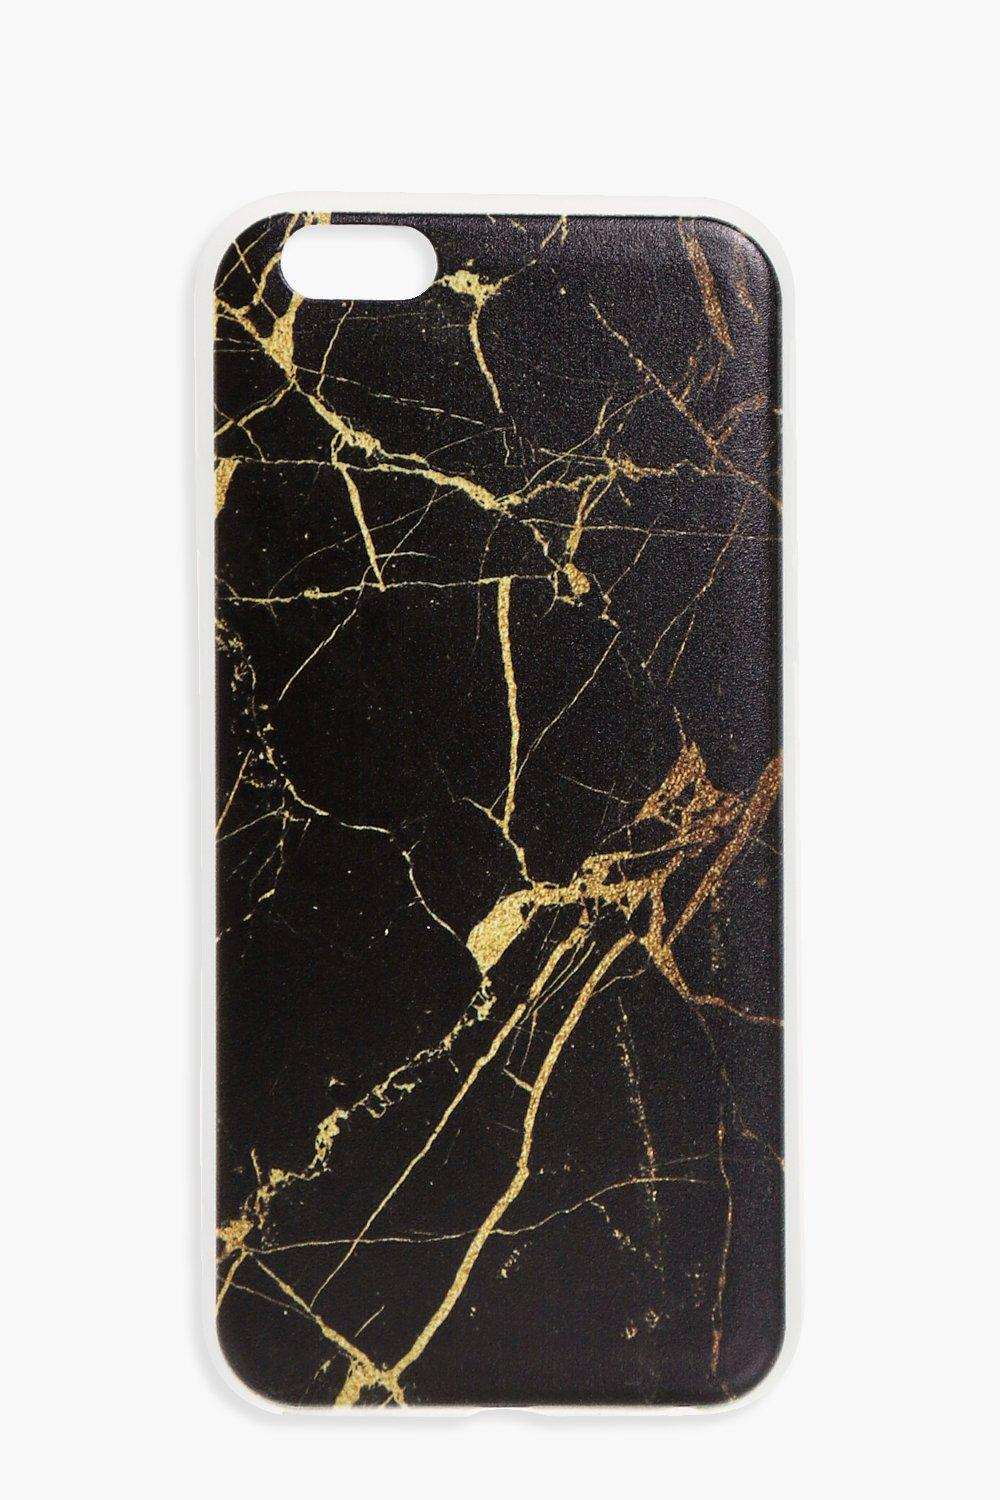 iPhone 6 Case - black - Marbled iPhone 6 Case - bl